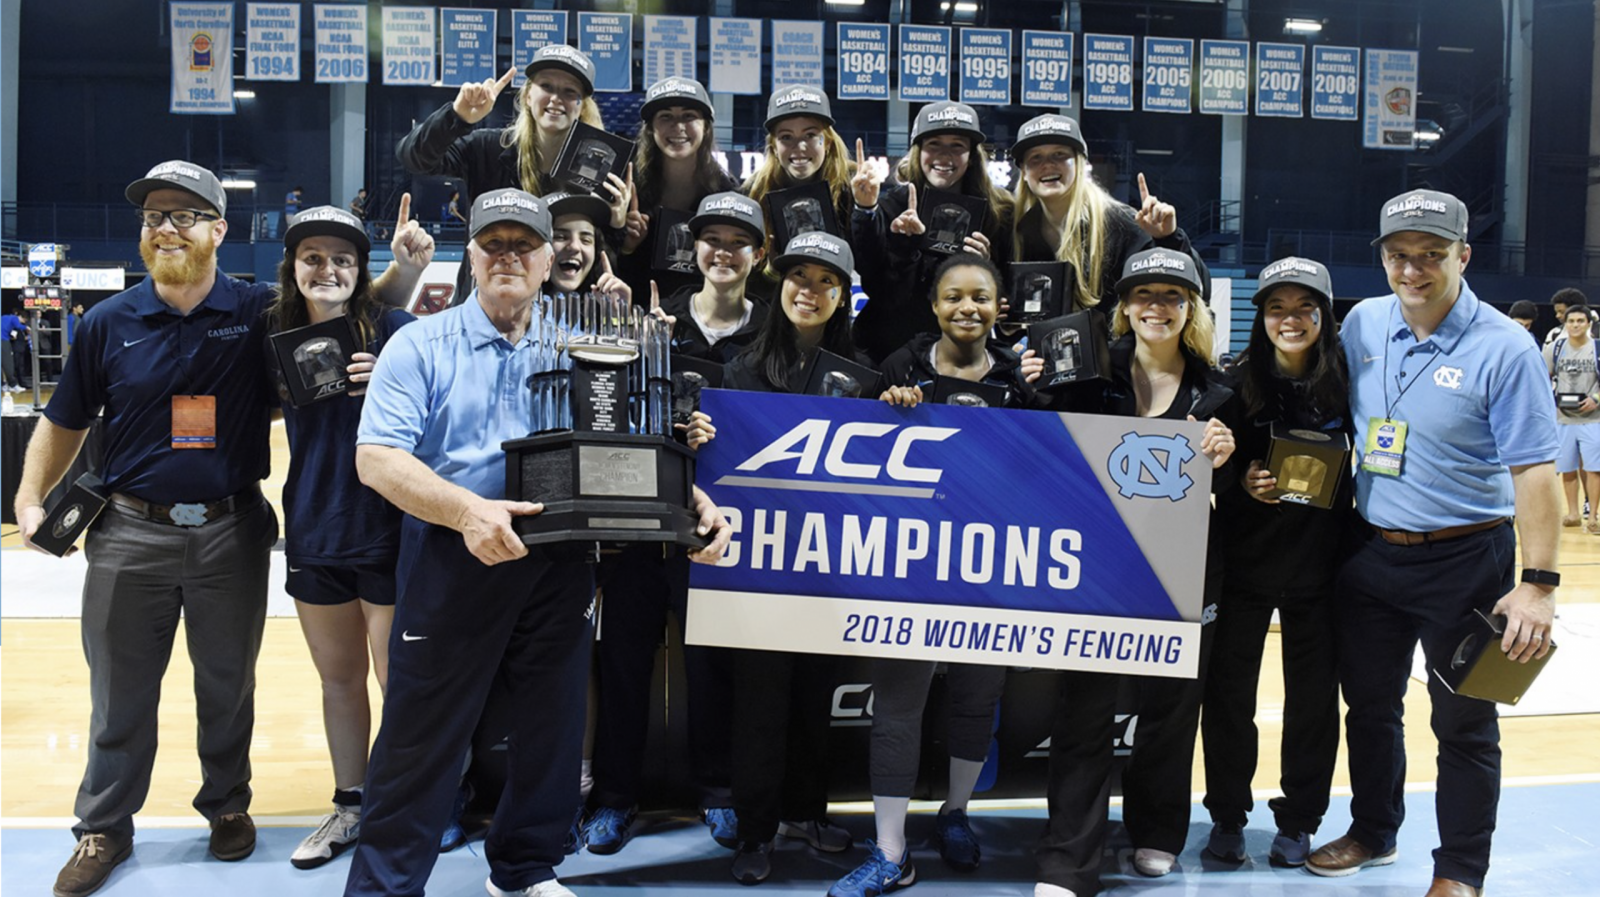 Women's fencing wins ACC Championship